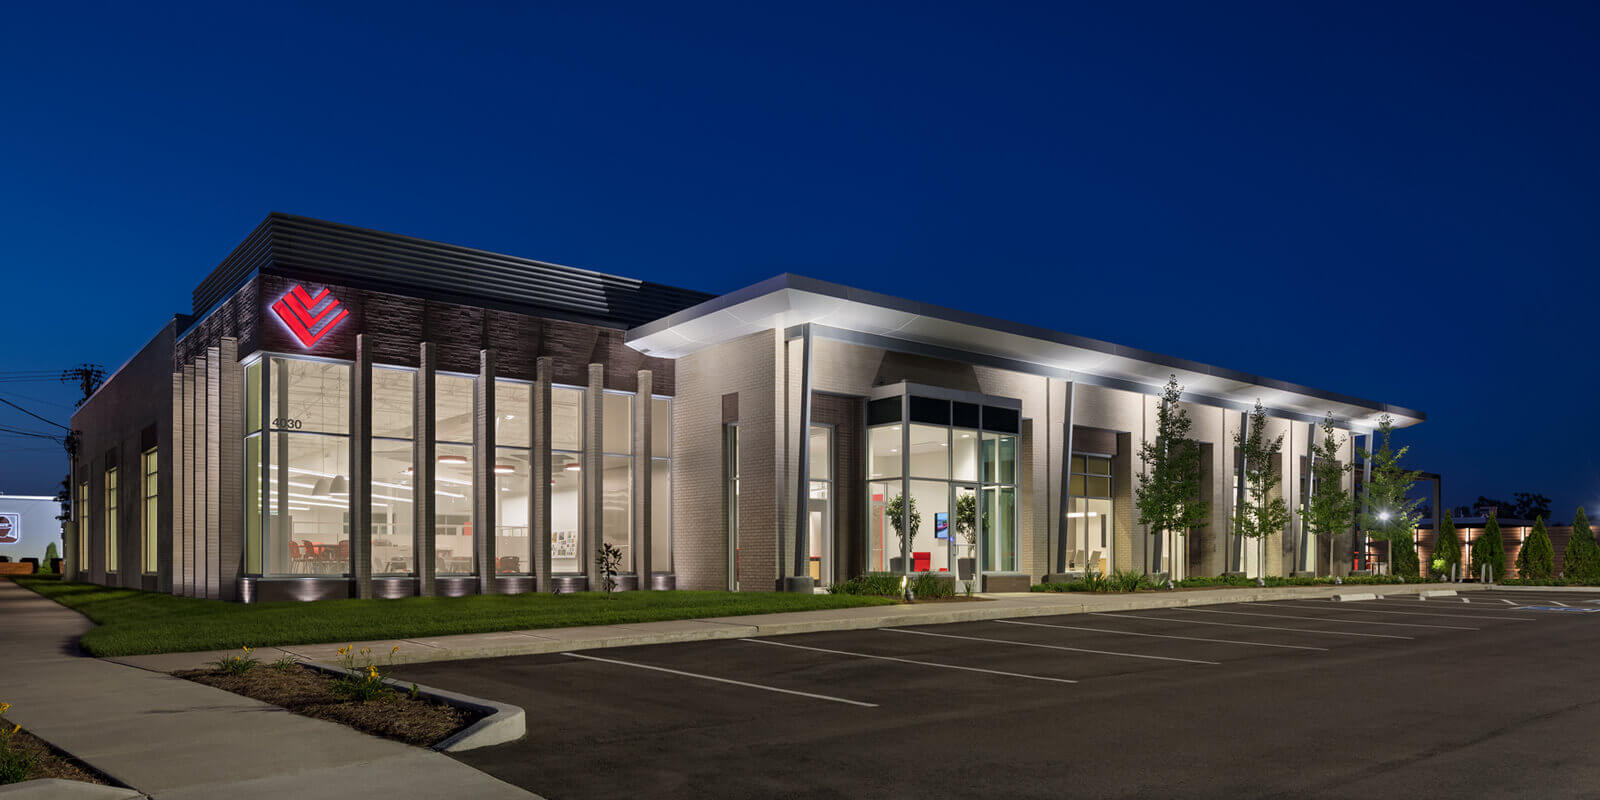 southeast-venture-office-nighttime-corner-exterior-architecture-design